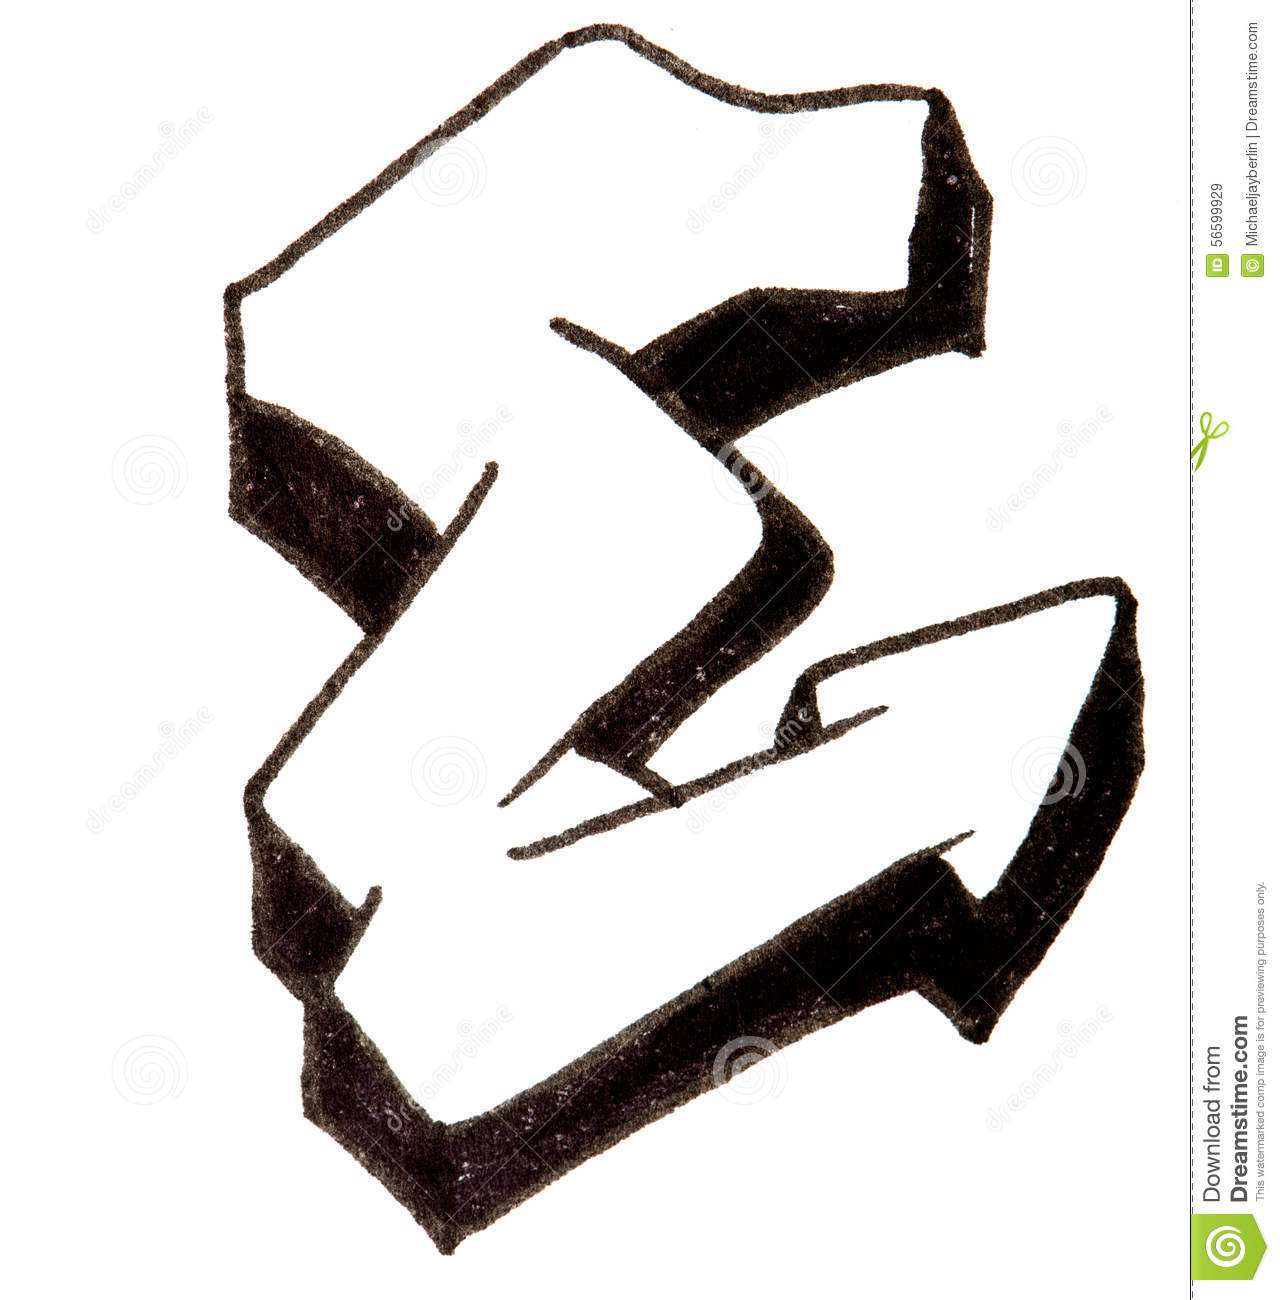 Graffiti Alphabet Stock Photos Royalty Free Stock Images